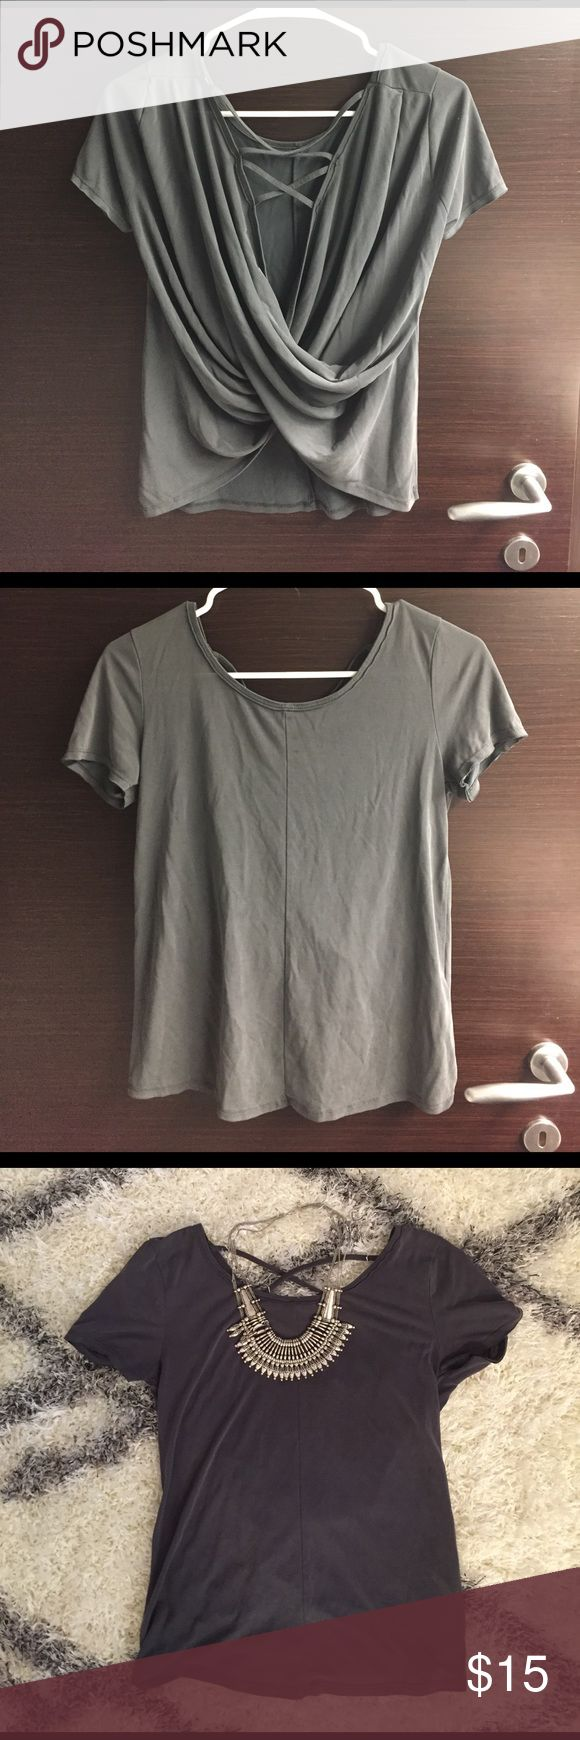 Black t shirt white cross on back - Abercrombie And Fitch Grey Cross Back T Shirt